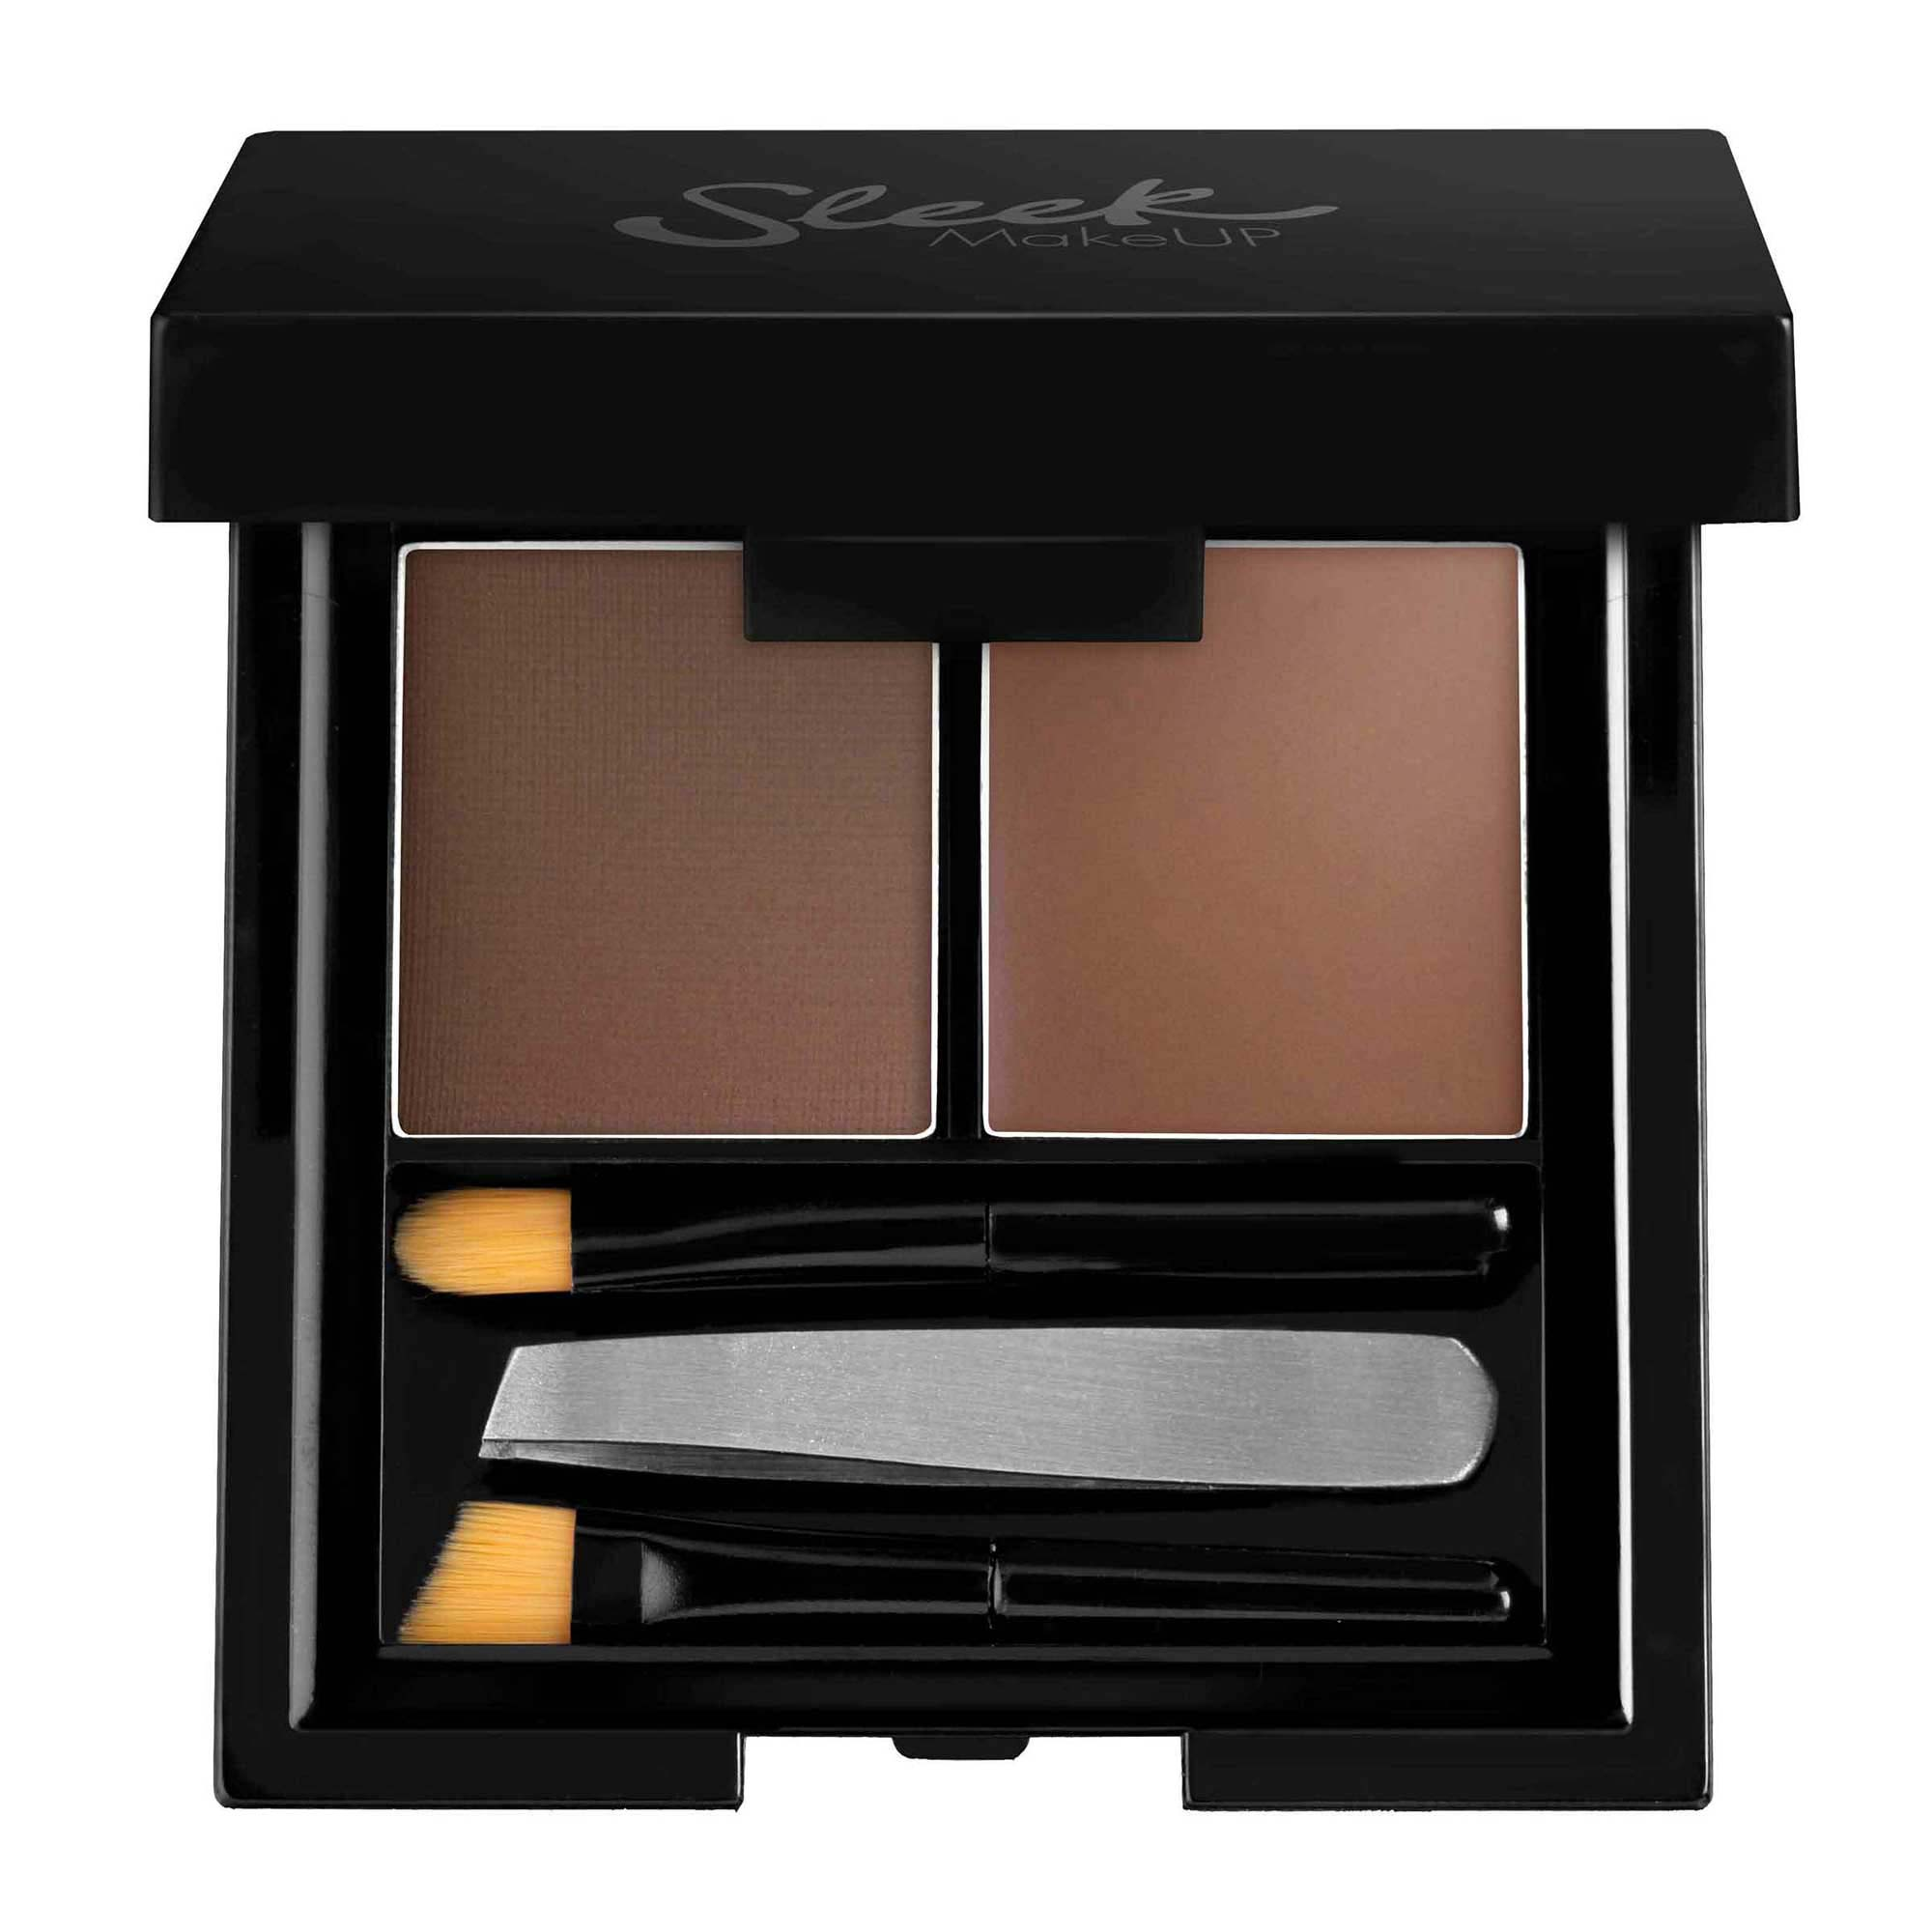 Brow Kit Medium Sleek Makeup